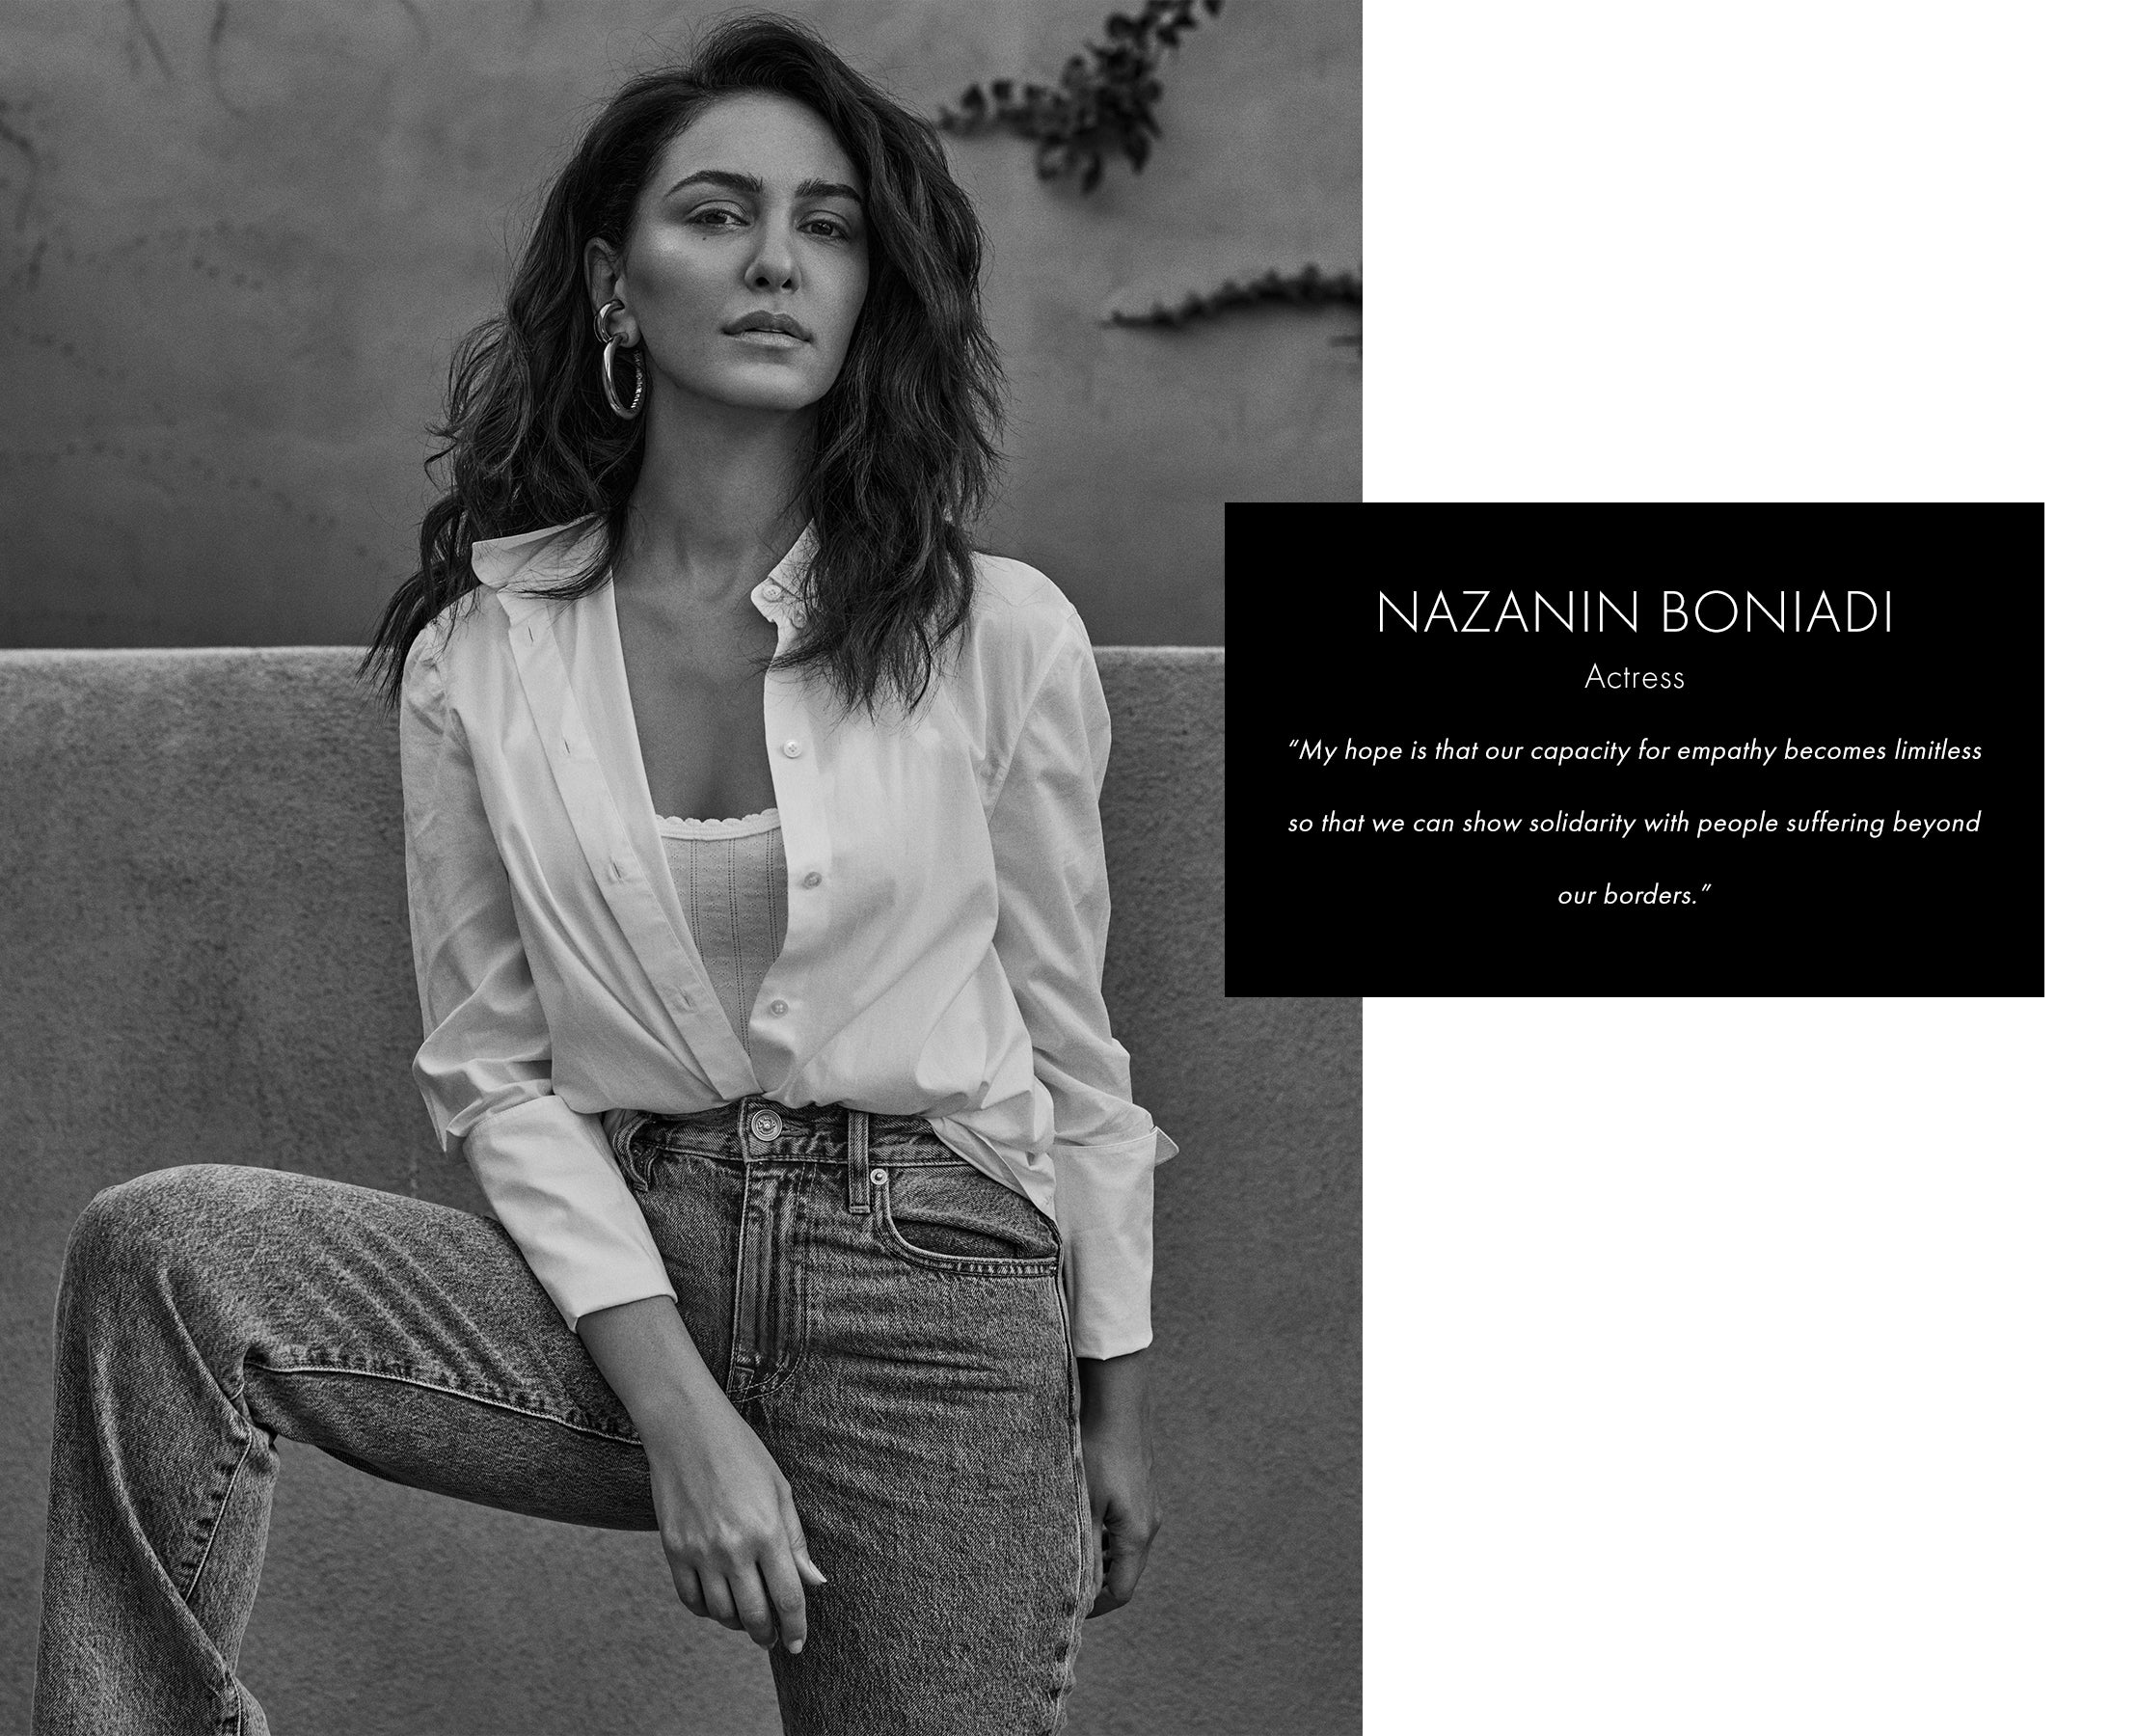 Nazanin Boniadi in white button down and jeans